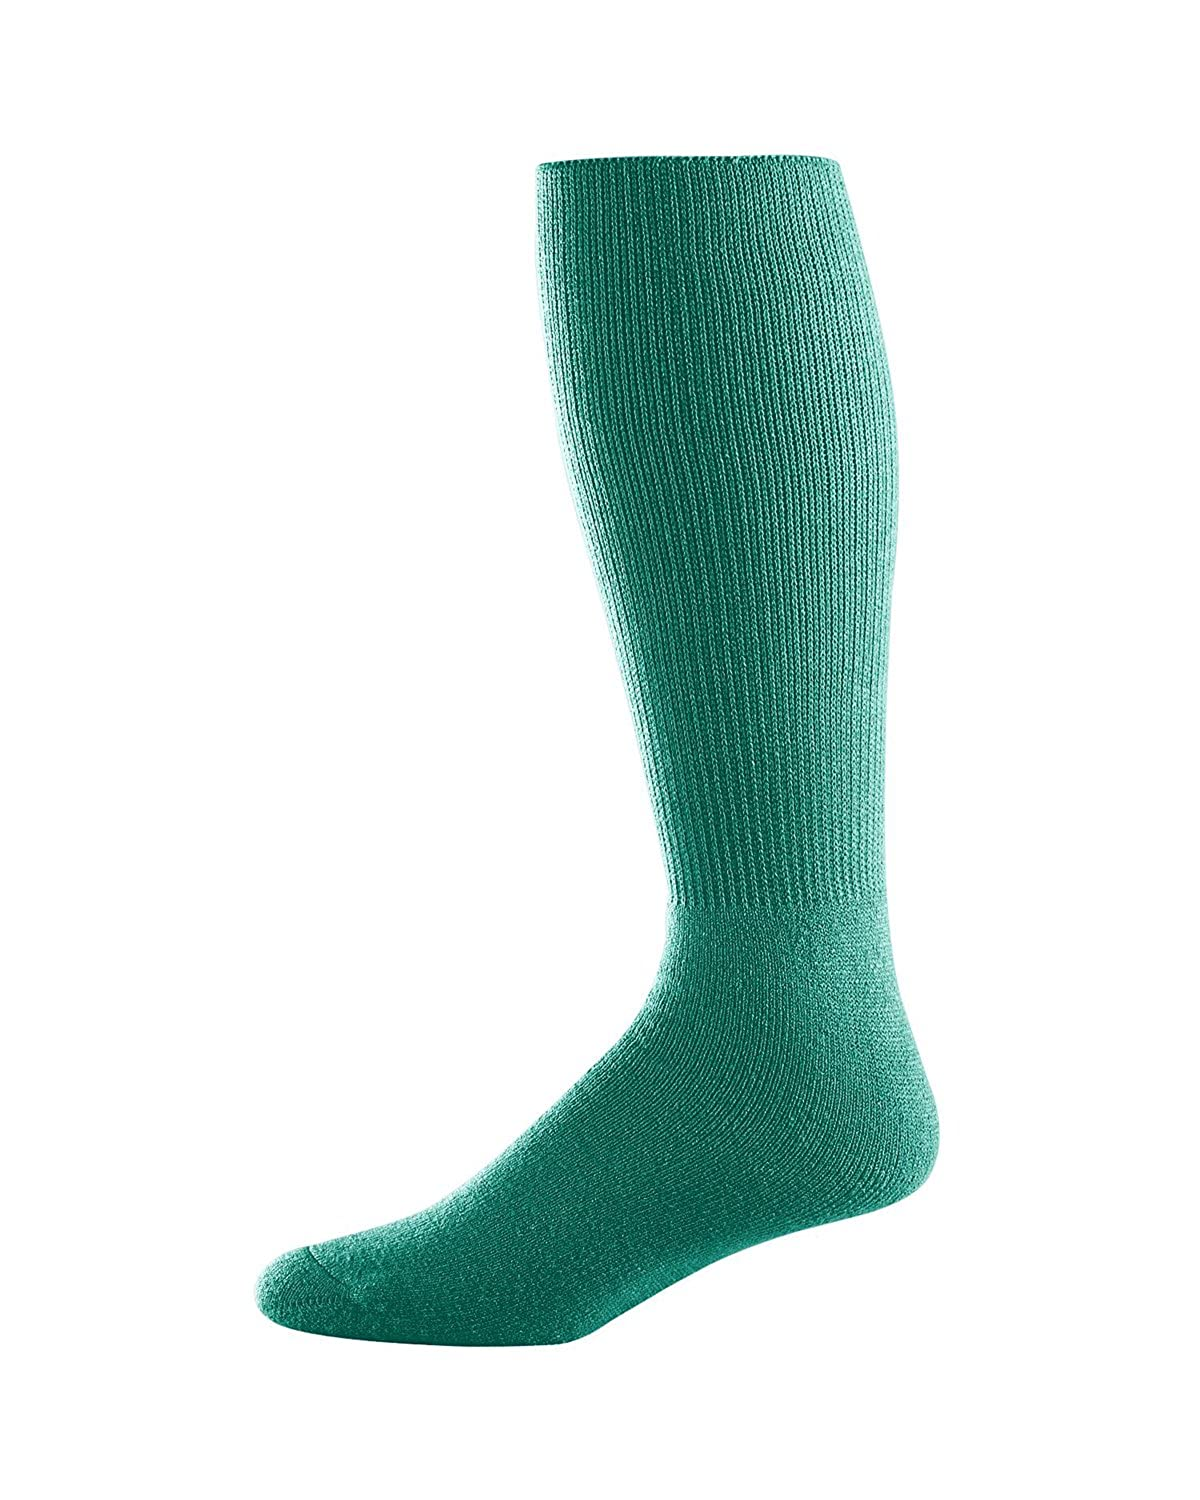 Augusta Sportswear KIDS ATHLETIC SOCKS